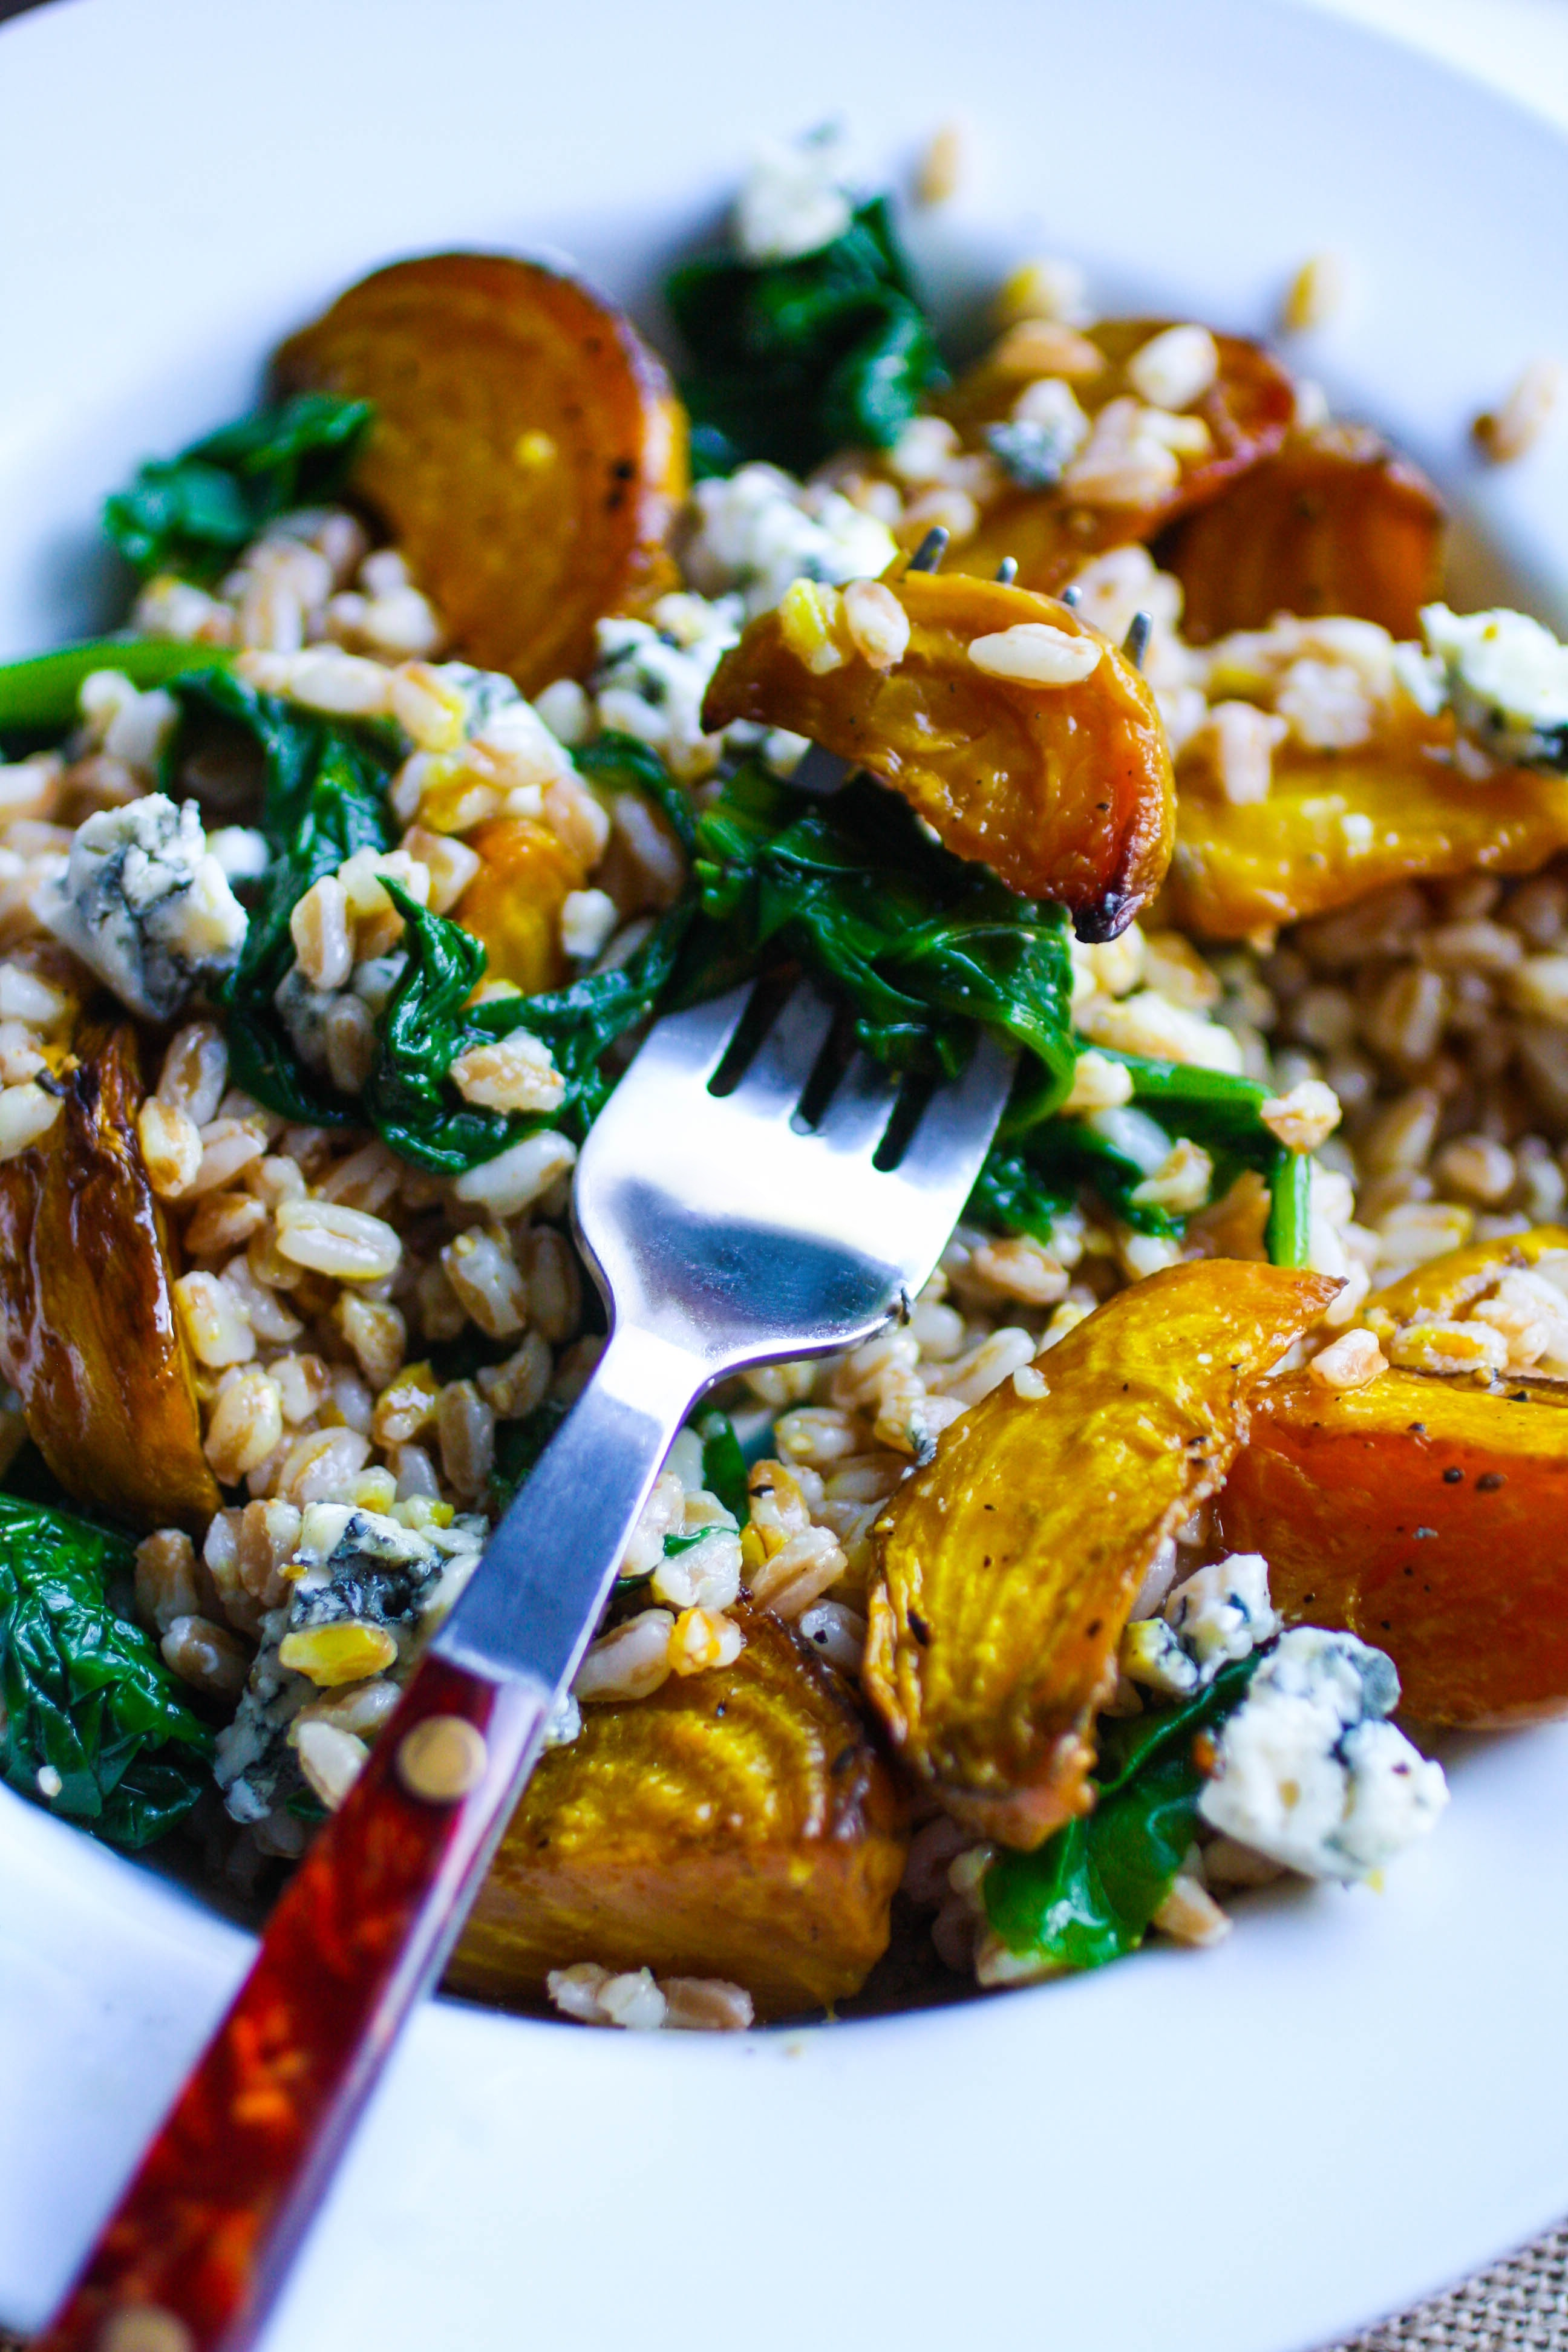 Roasted Beet & Farro Salad is a lovely dish to serve in the winter. This salad shines with beets, farro, and your favorite vinaigrette!